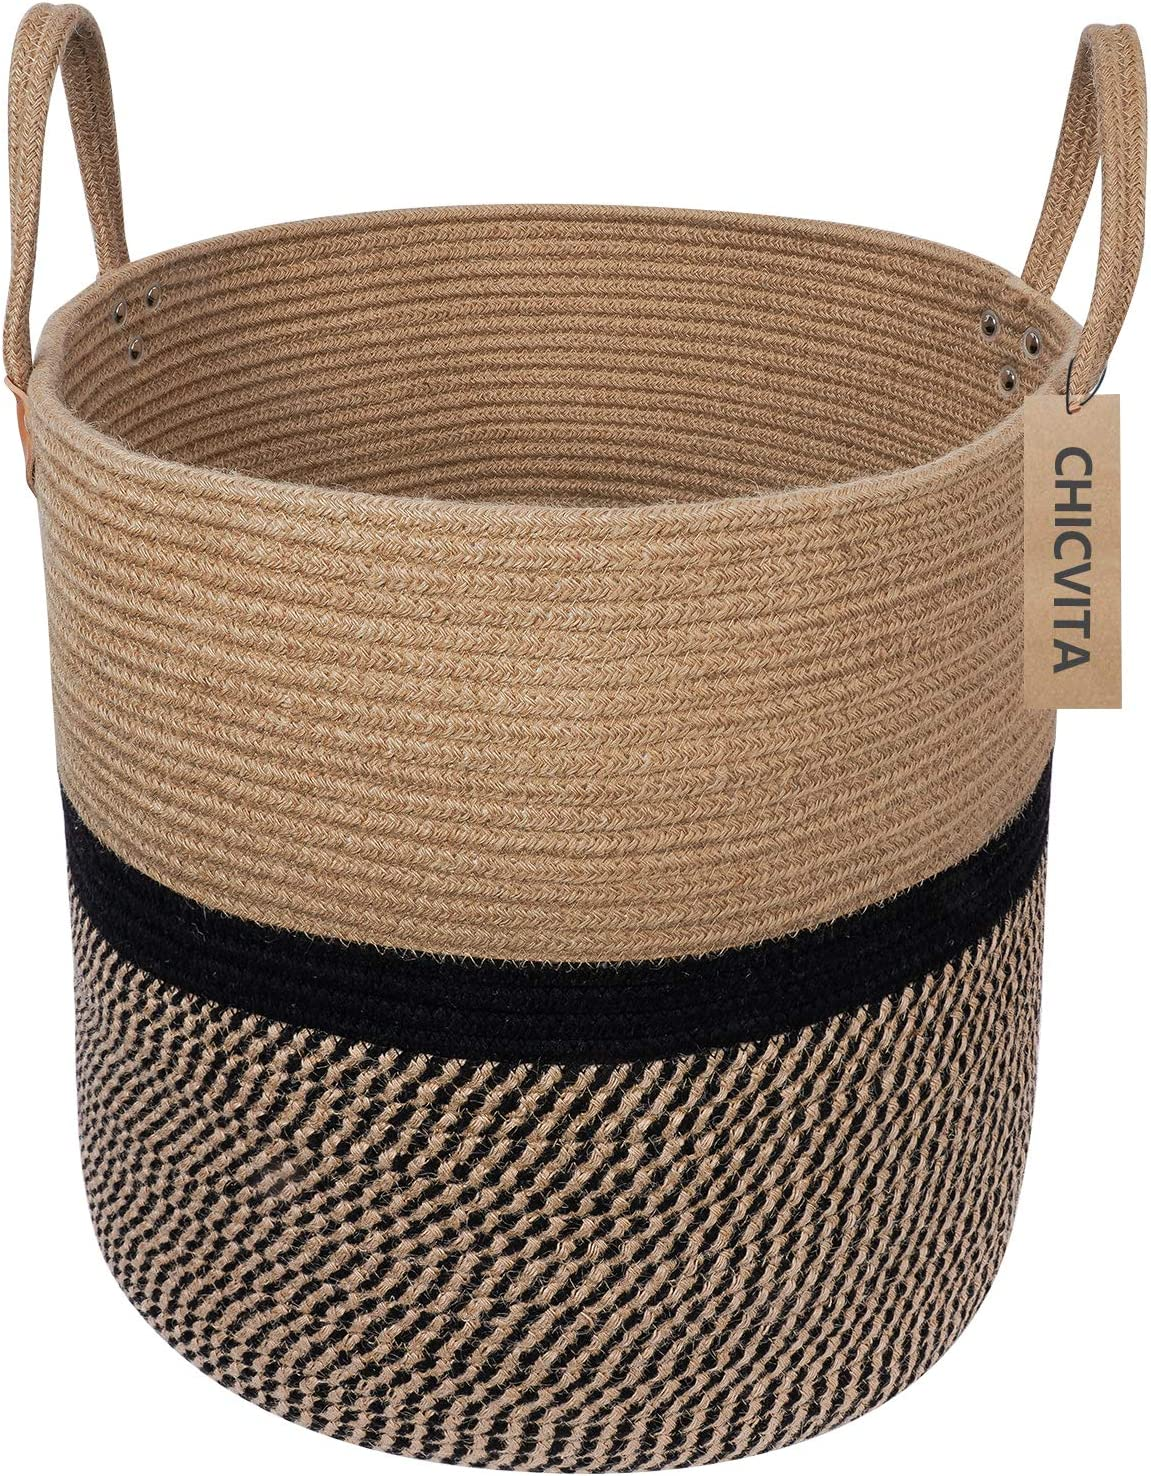 Coastal Hampers & Laundry Baskets